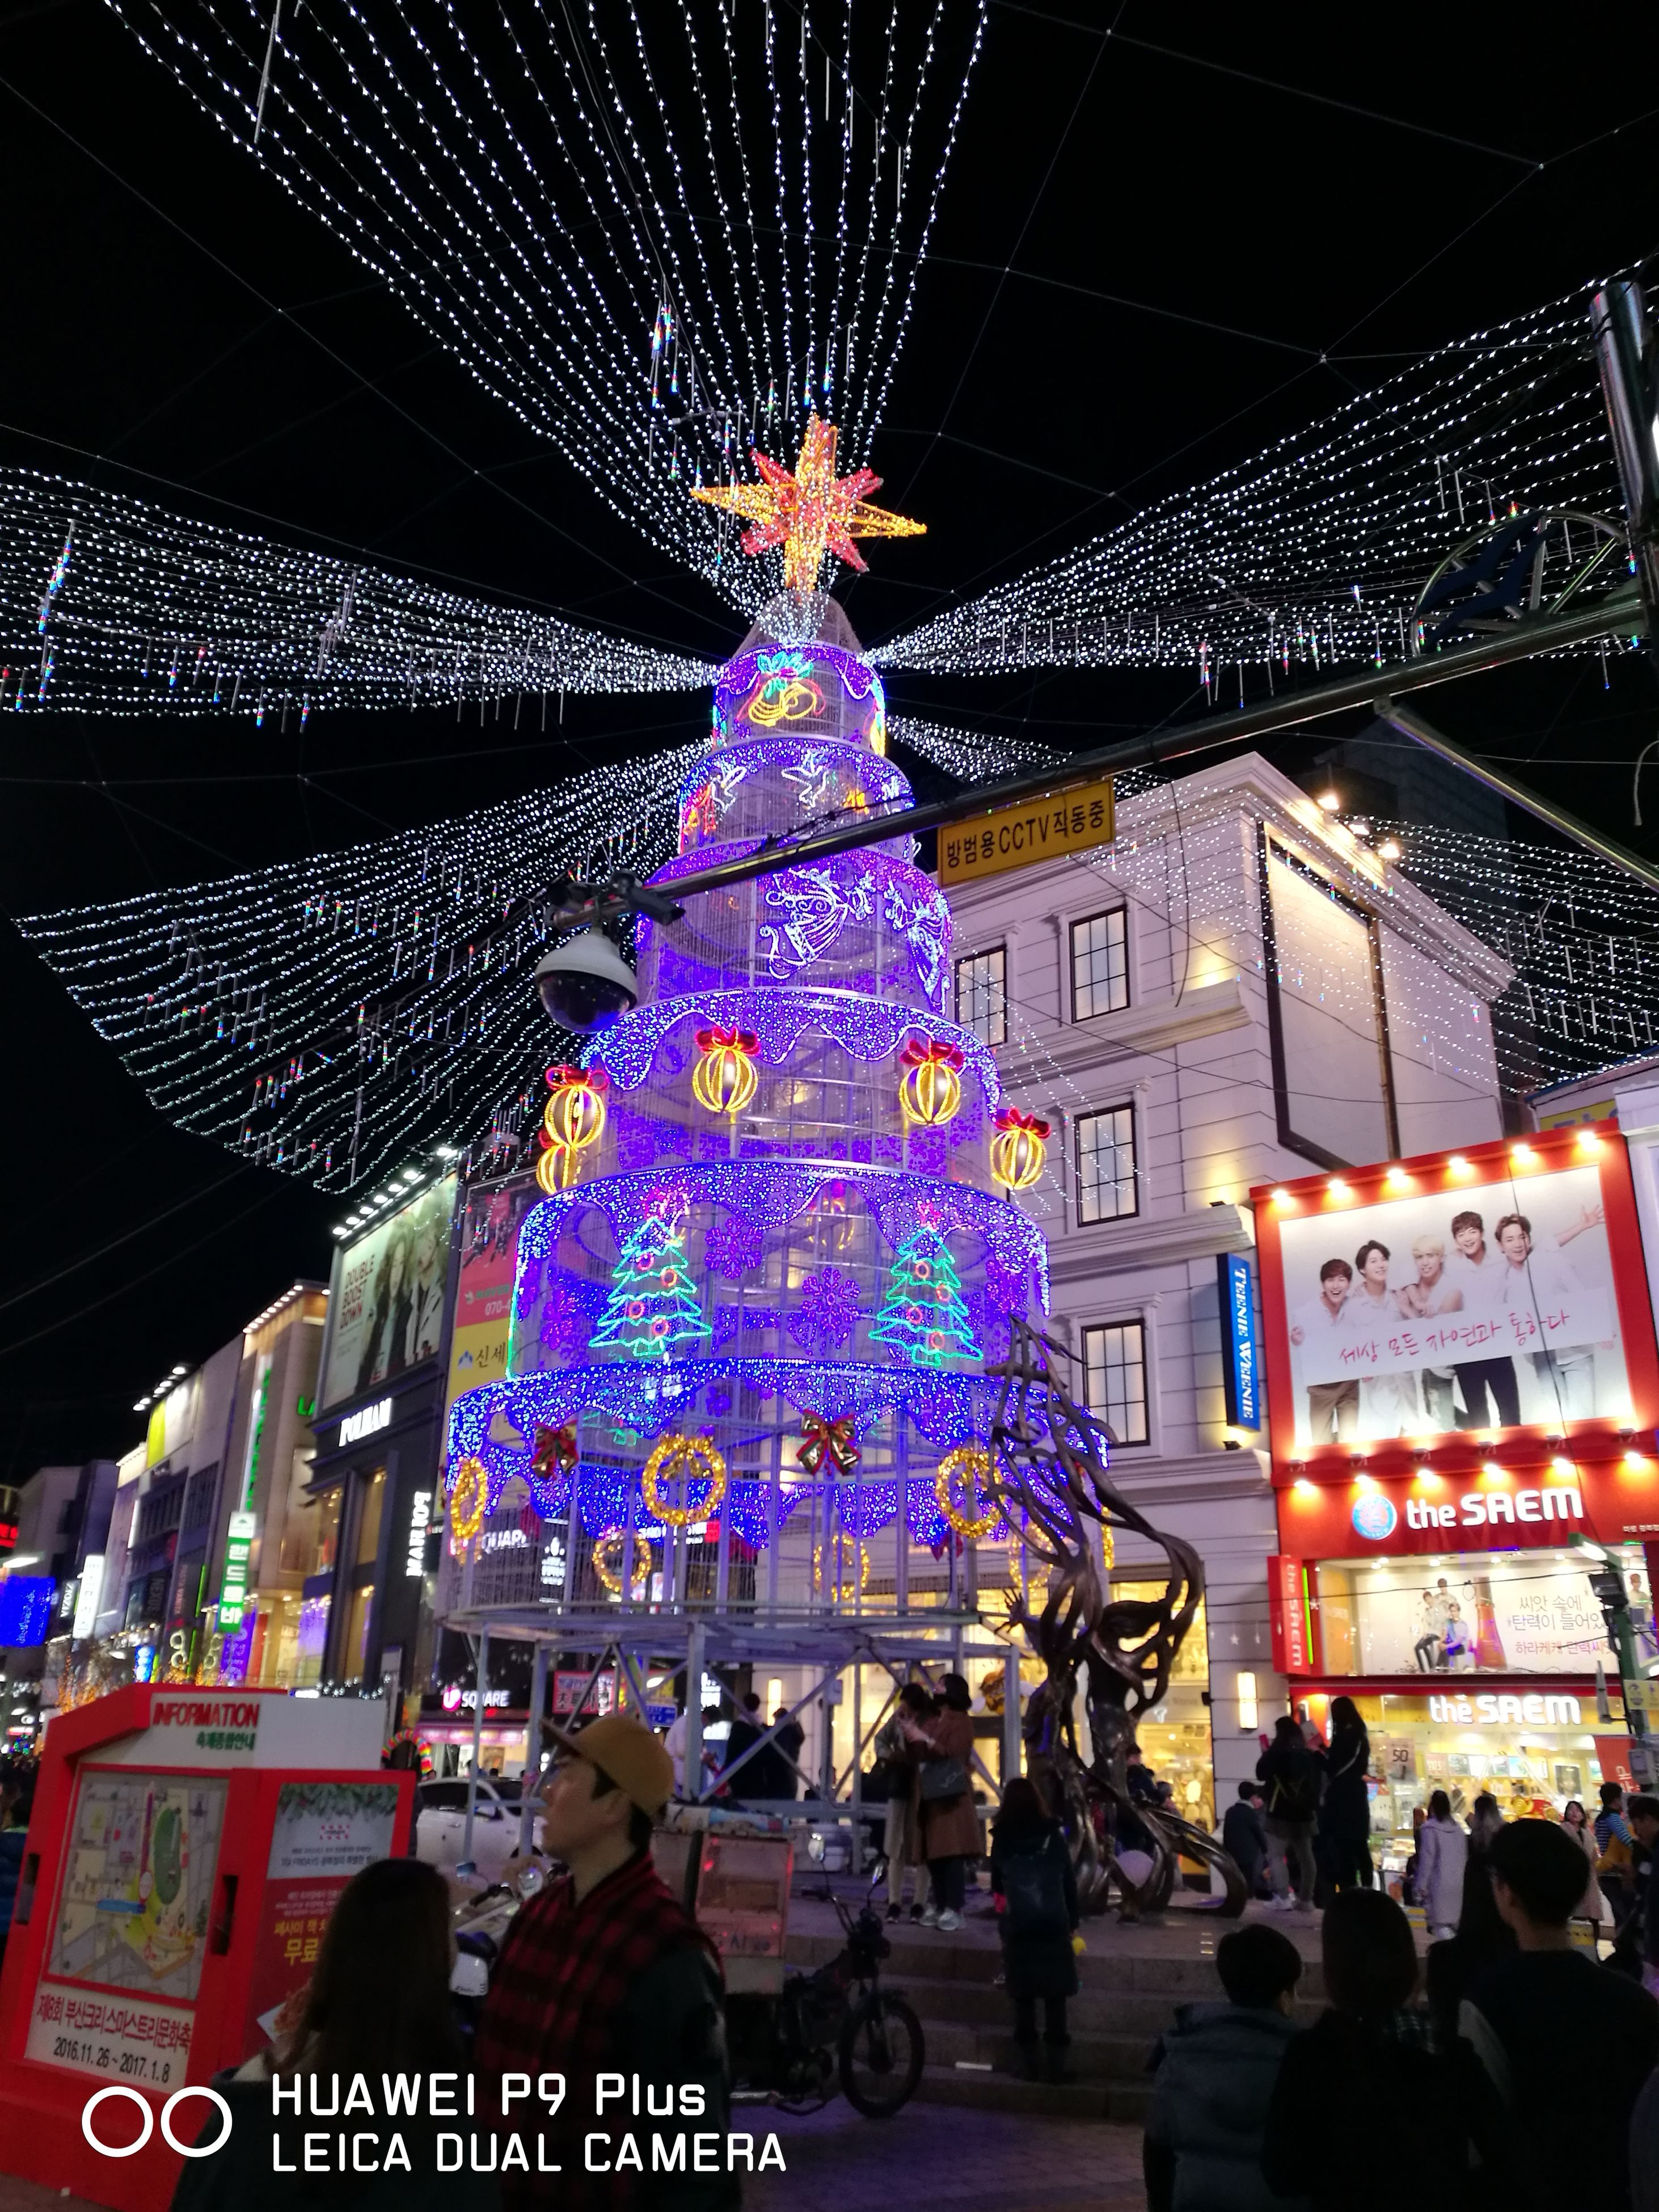 night, christmas lights, illuminated, built structure, christmas decoration, celebration, architecture, christmas, lighting equipment, multi colored, travel destinations, large group of people, christmas tree, sky, christmas ornament, outdoors, crowd, people